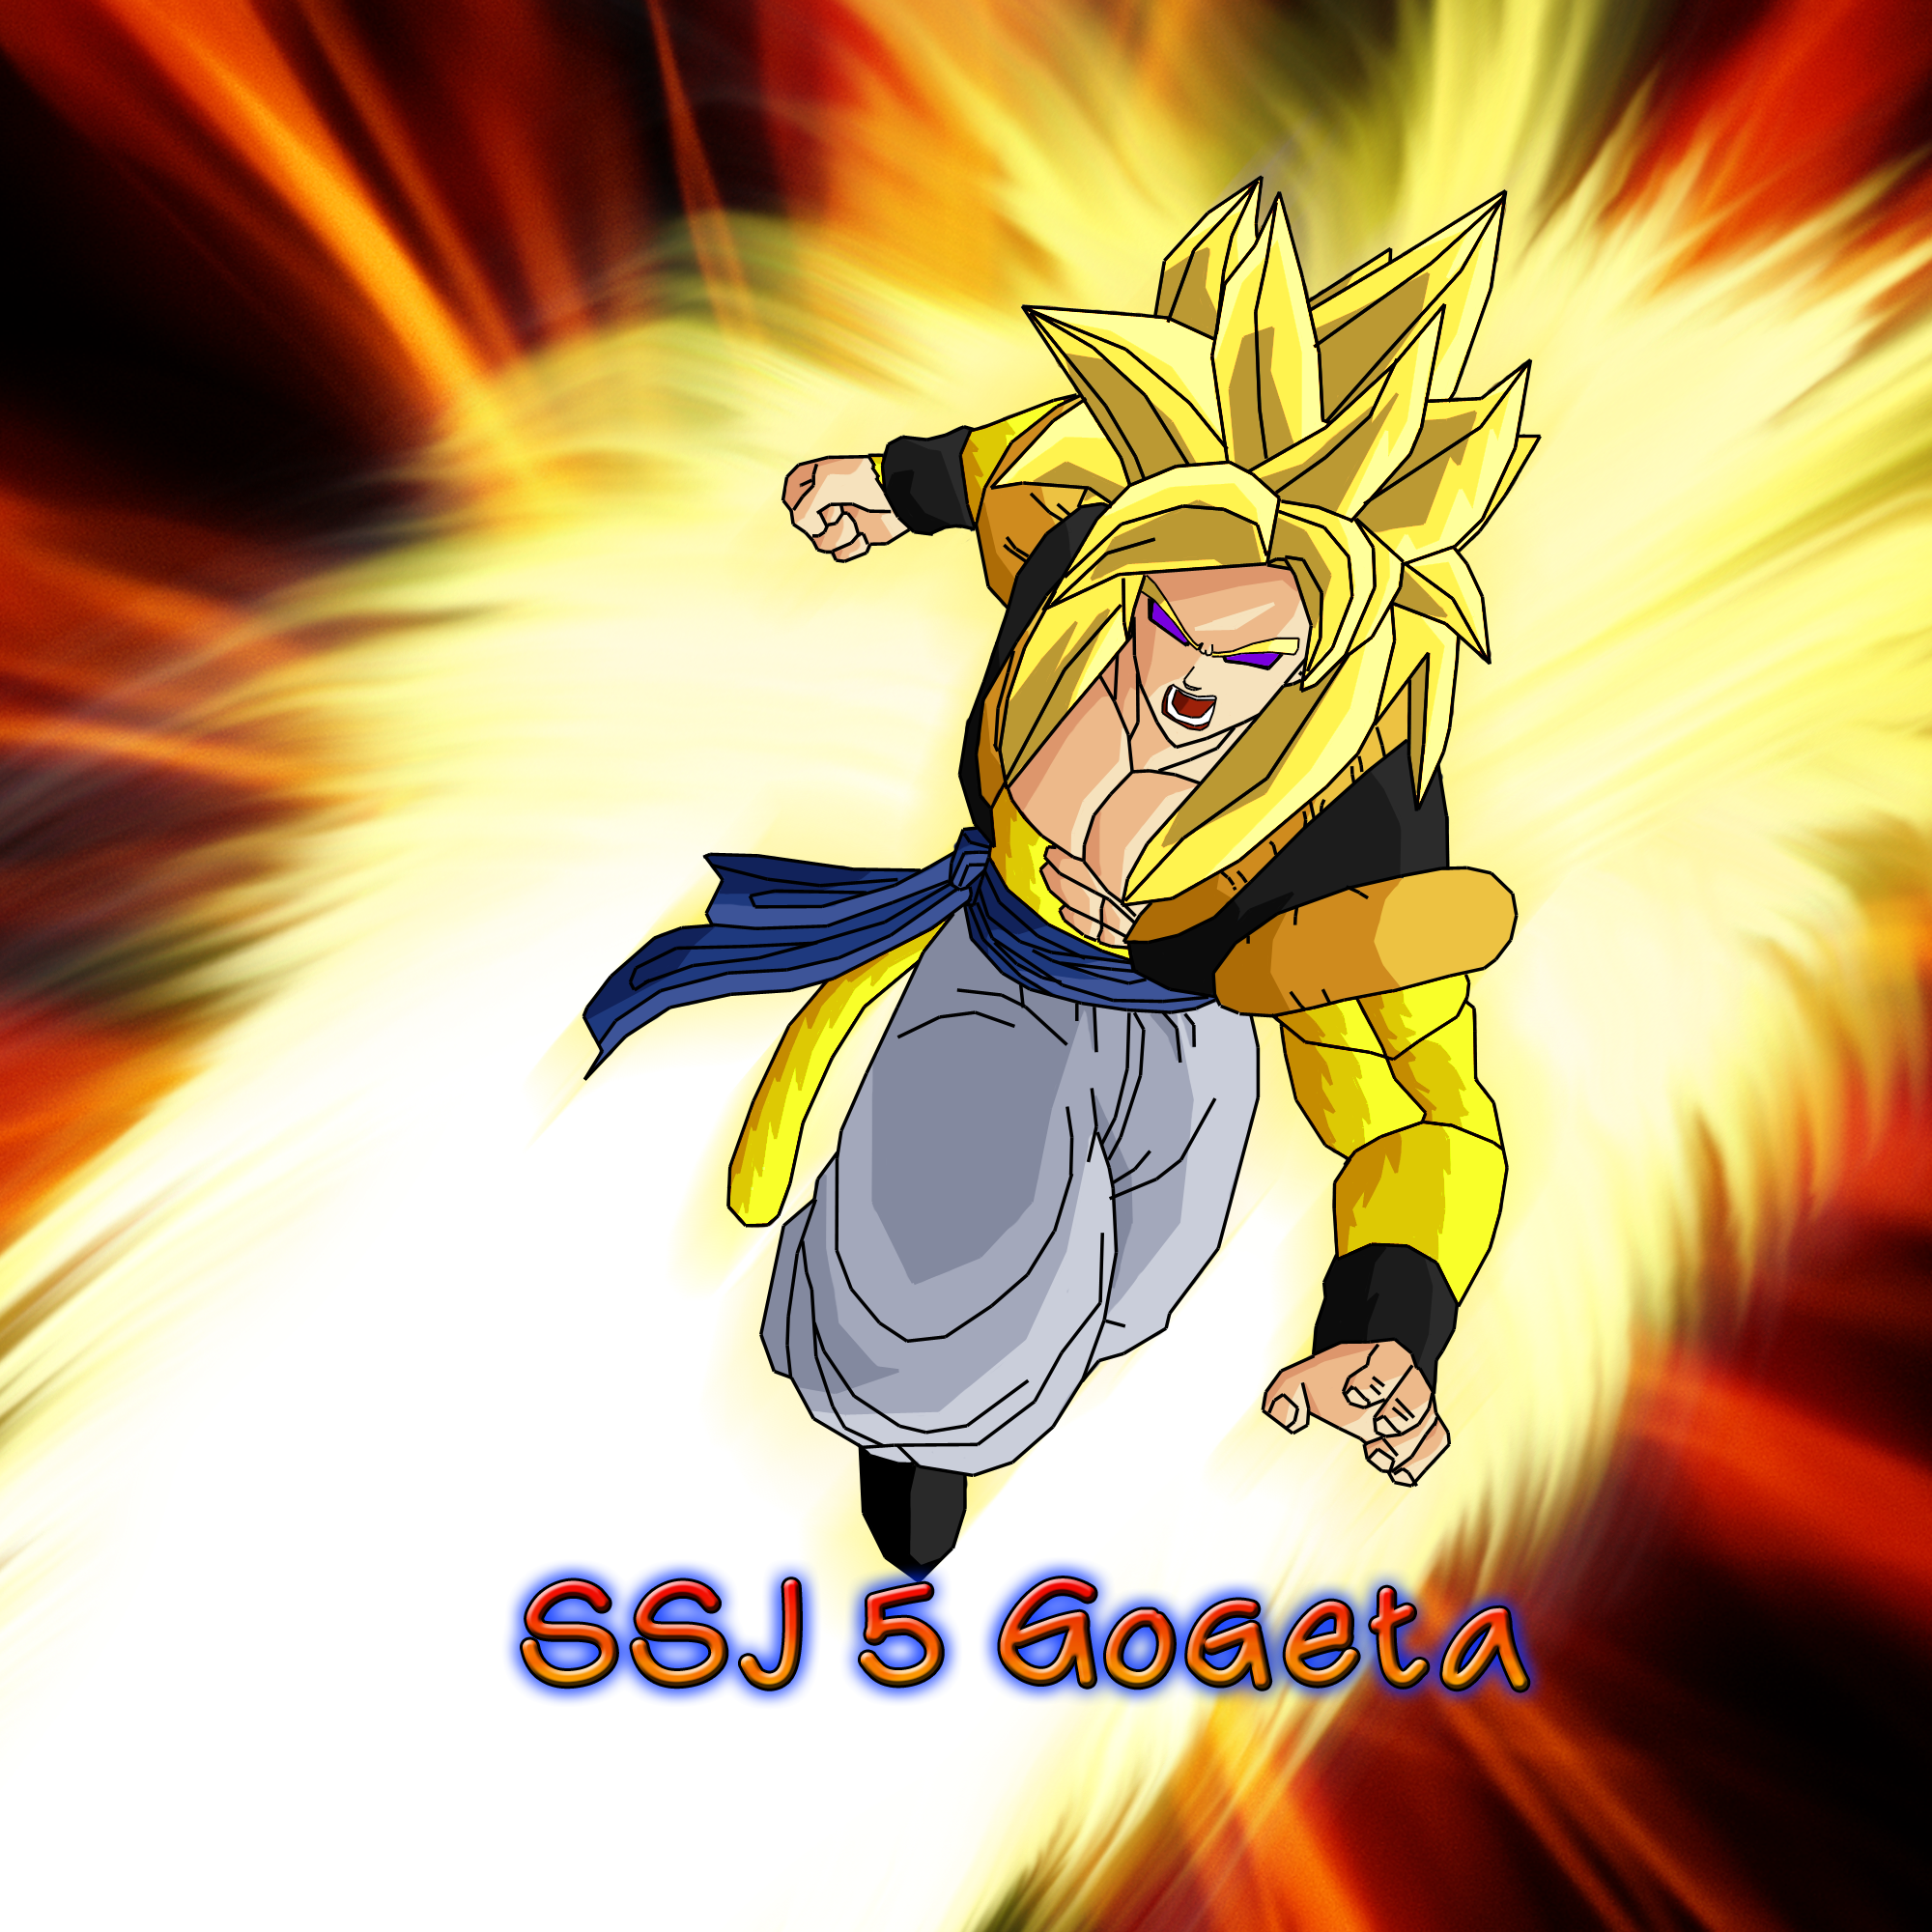 Dragon Ball Super Christmas Wallpaper: Gogeta Wallpaper